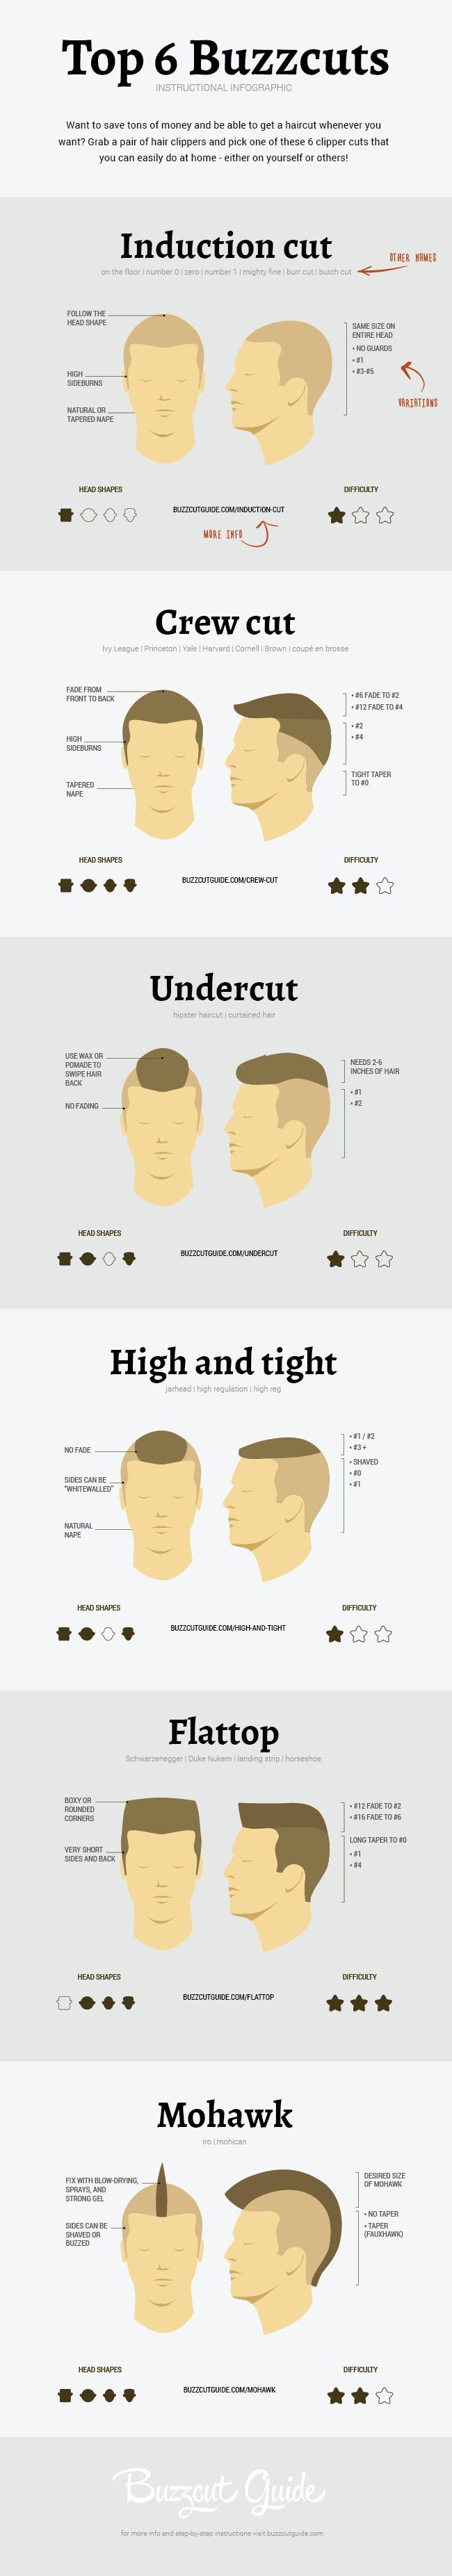 Different Types of Buzzcut Hairstyles for Men.